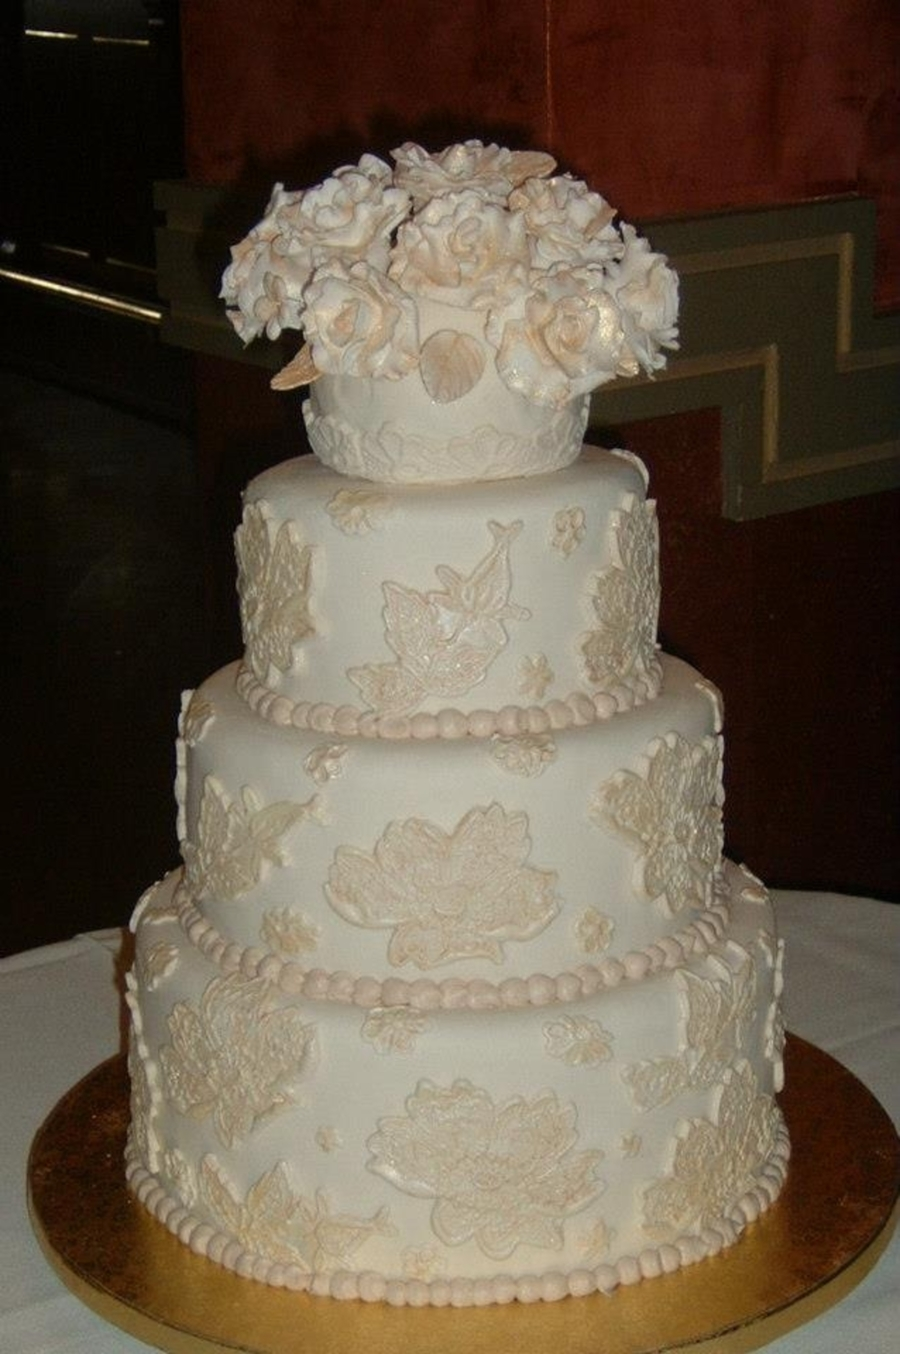 Alicia & Bo's Wedding Cake on Cake Central